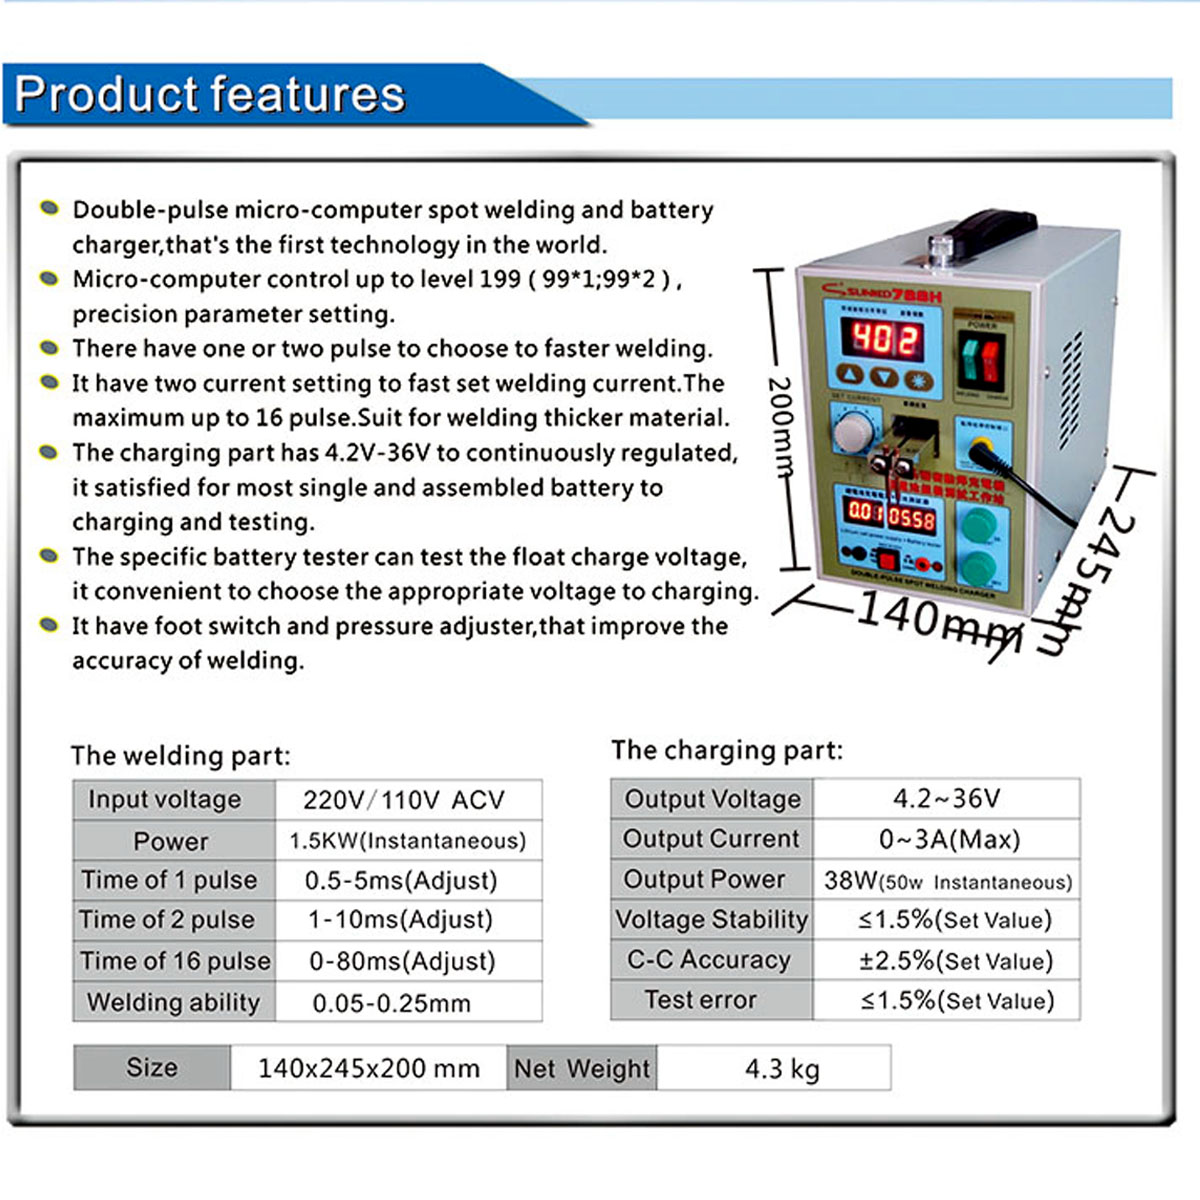 Sunkko S788 Pulse Spot Welding Machine Rechargable with LED Battery Testing Charging Function